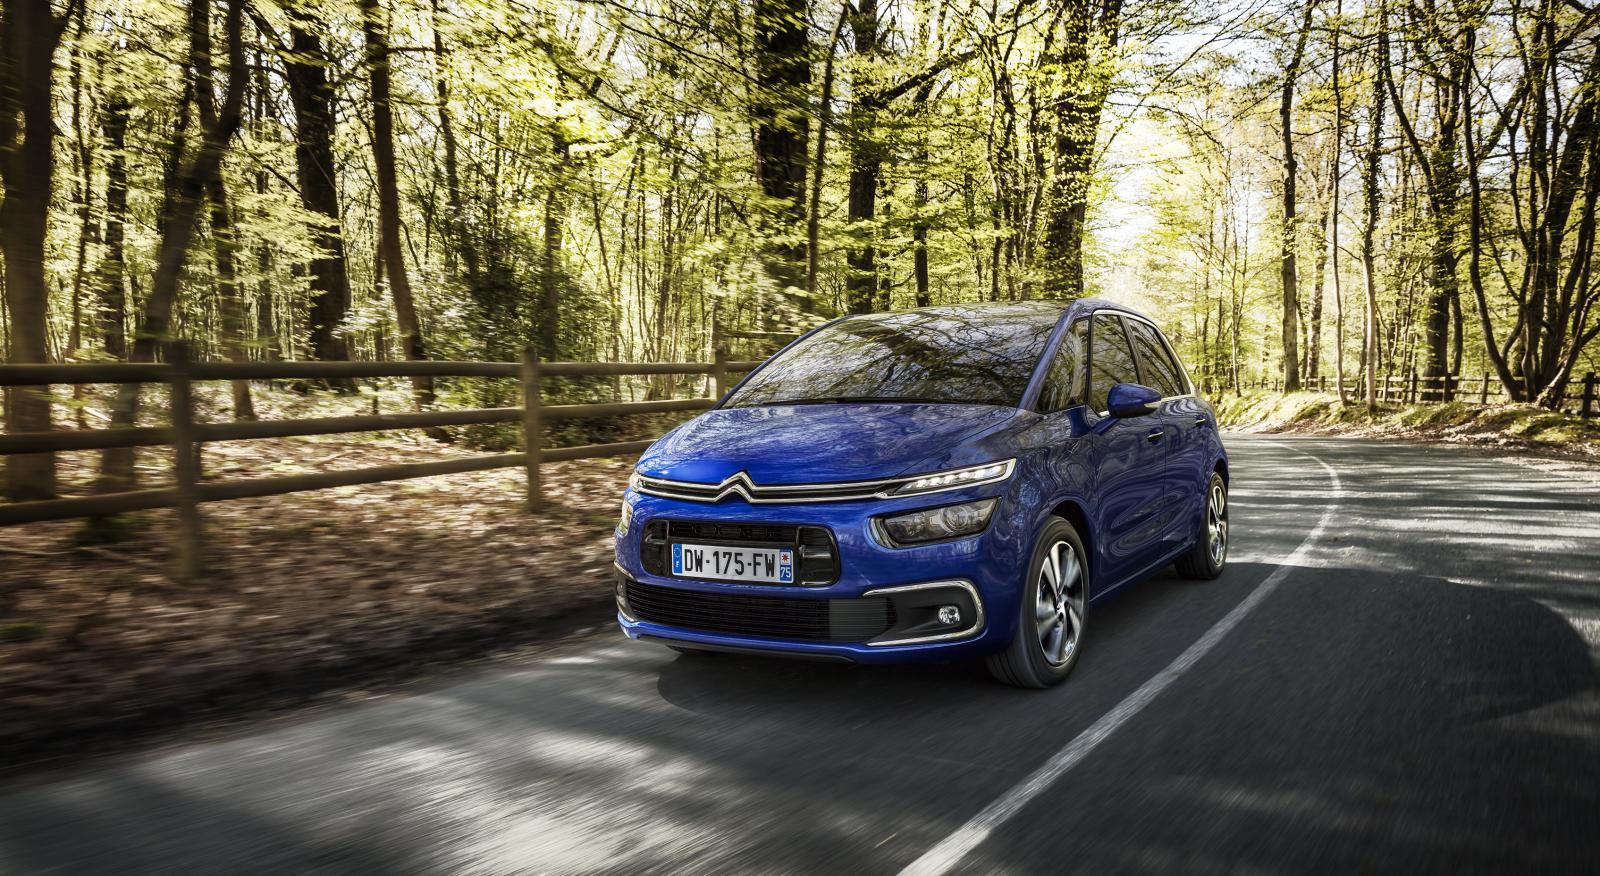 C4 Picasso Shine 2016 ¾ forfra